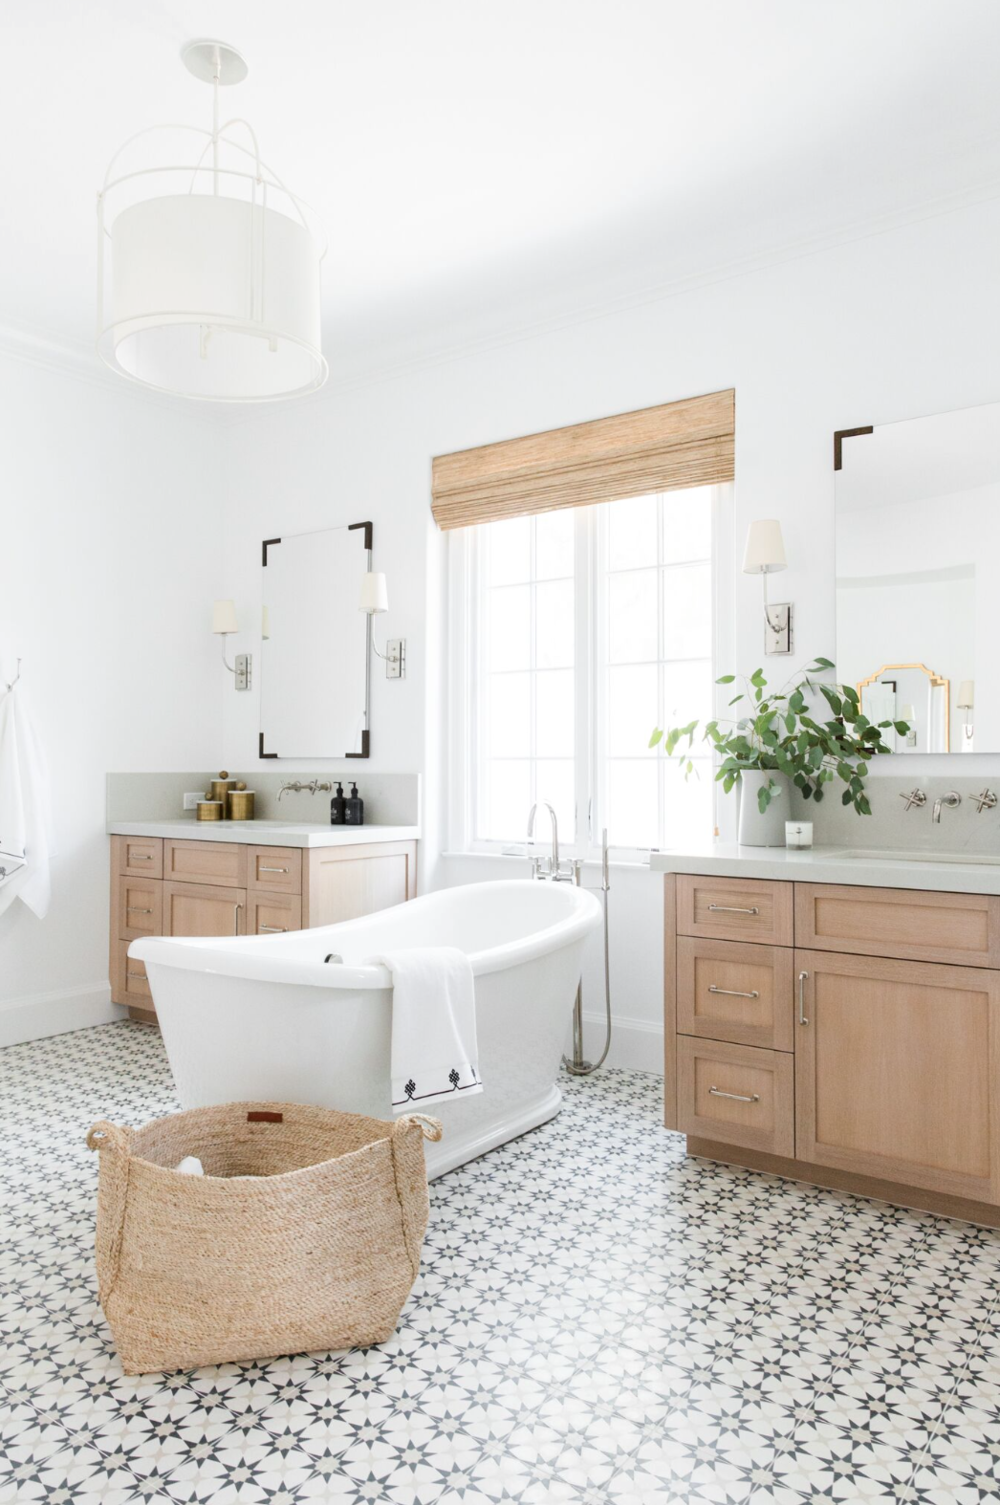 The 15 Most Beautiful Bathrooms on Pinterest - Sanctuary ...